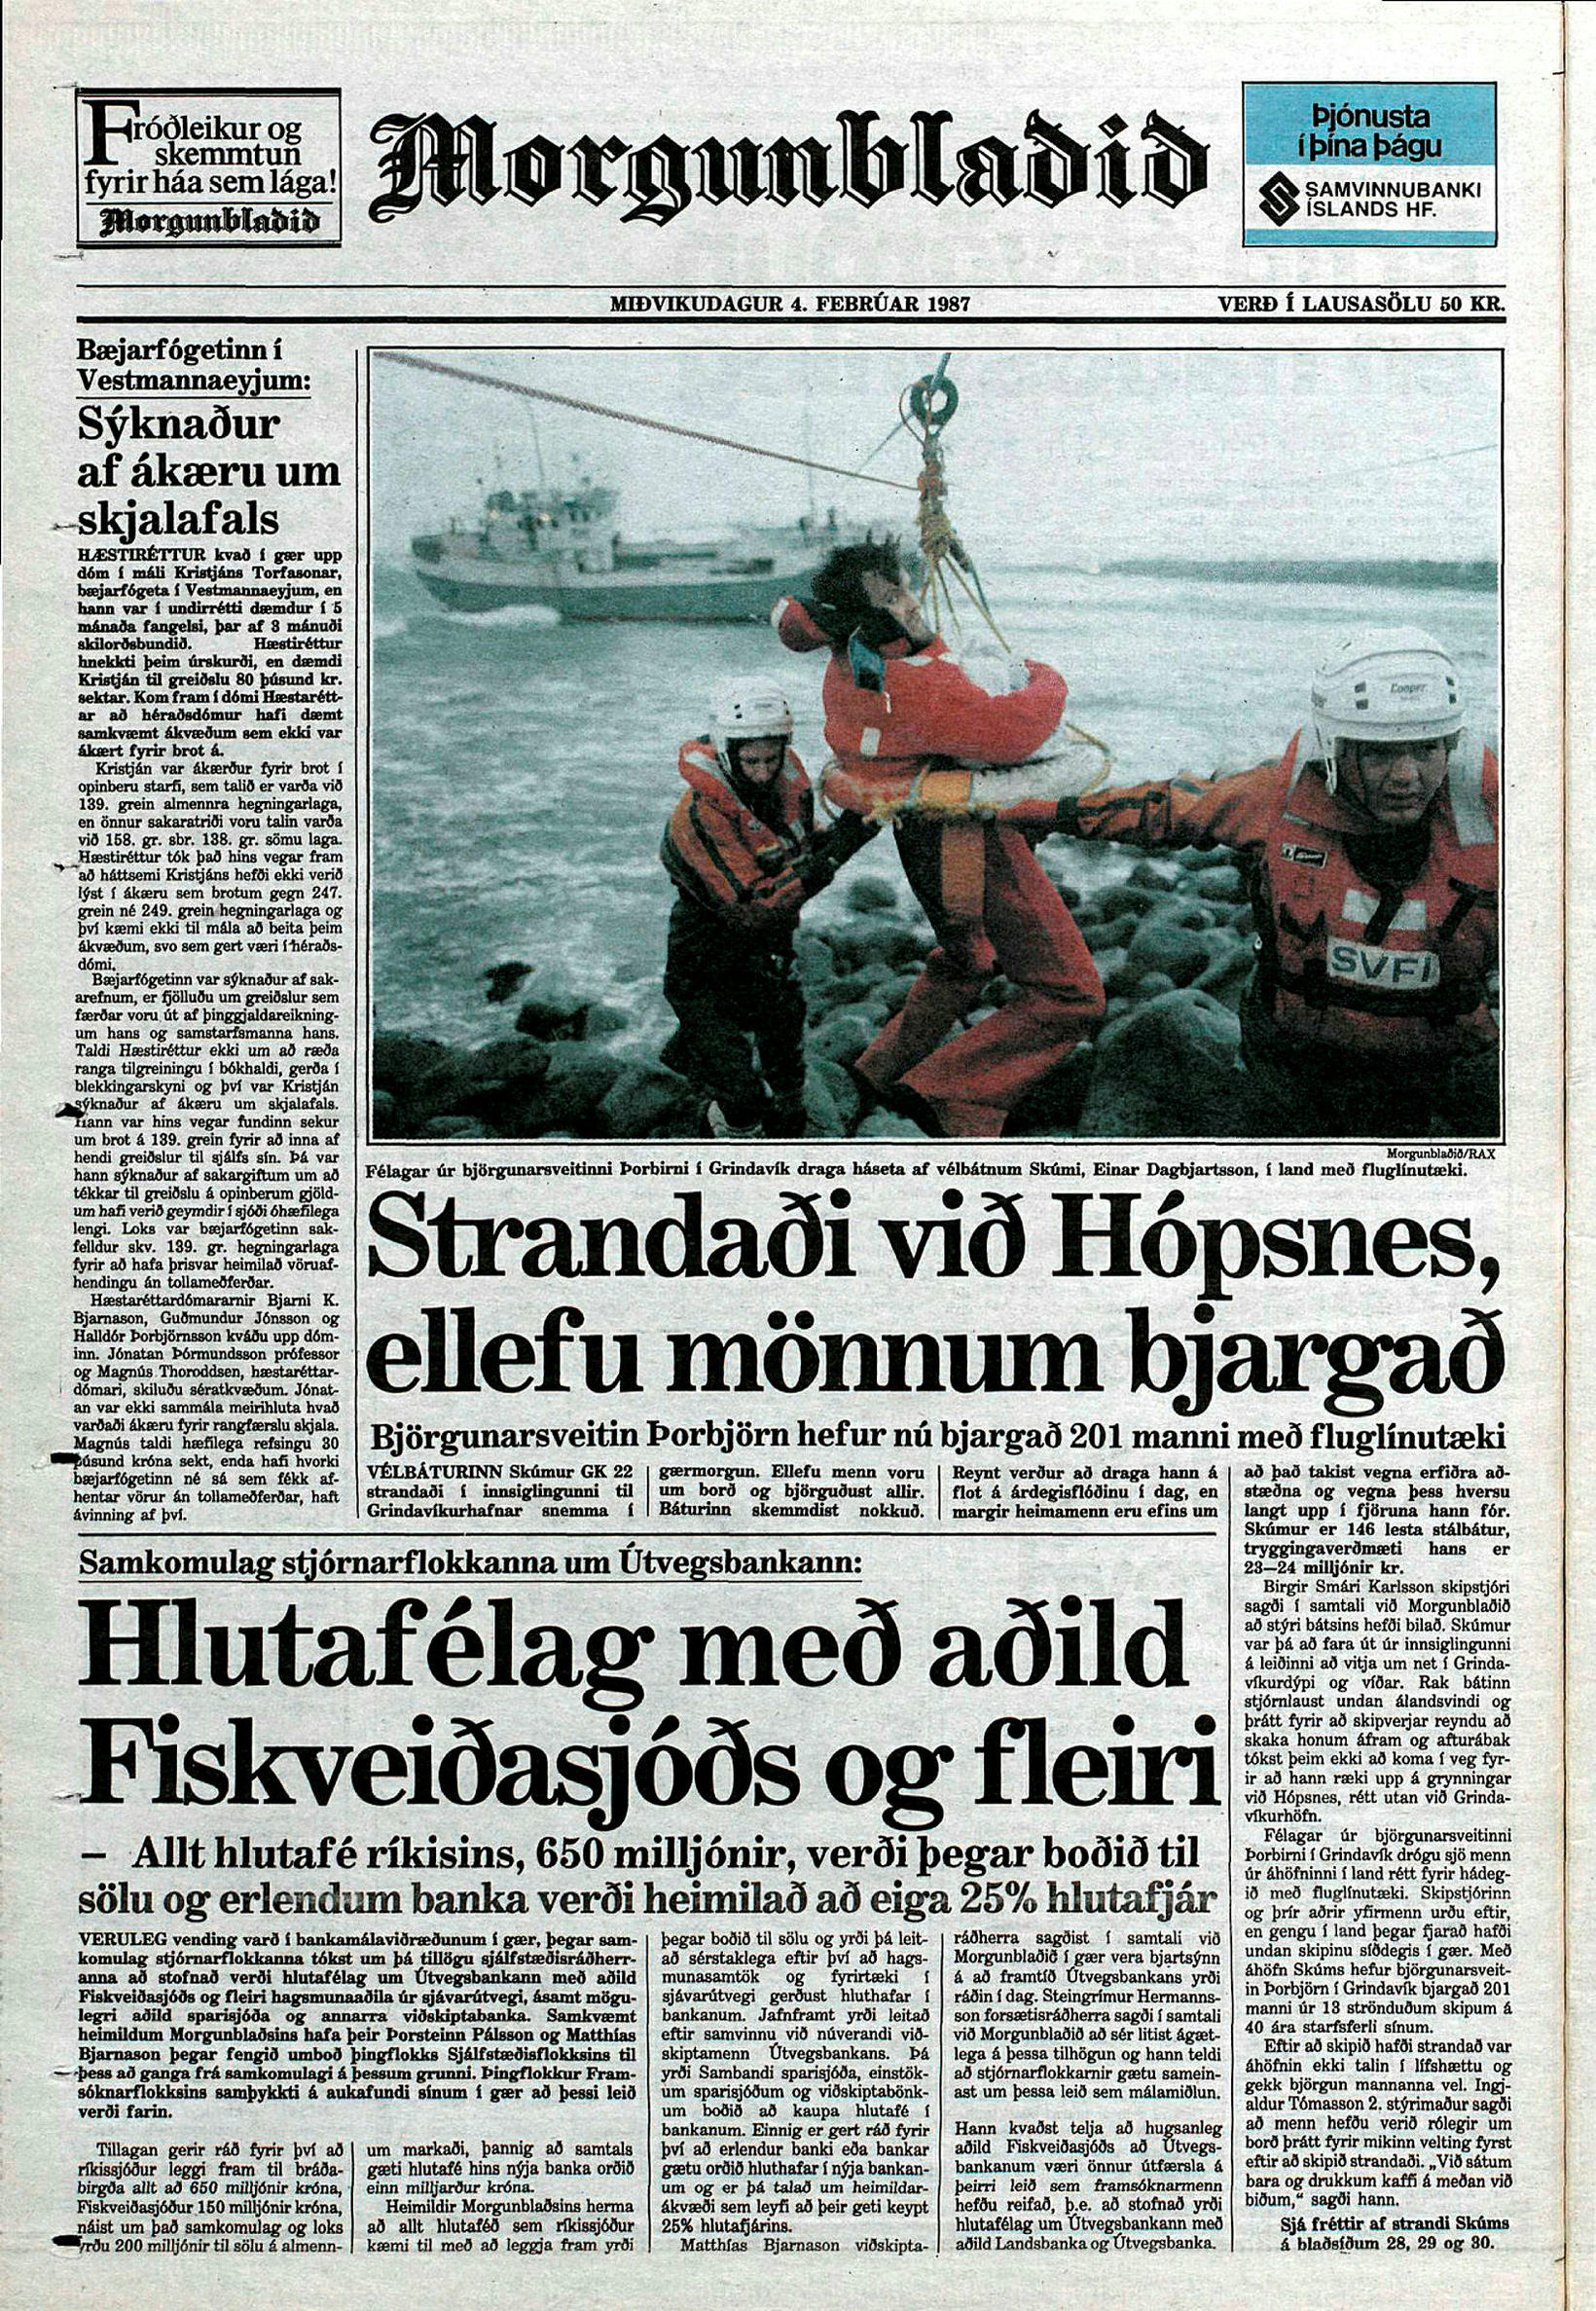 Report of the rescue of 11 fishermen by Þorbjörn. Photo …